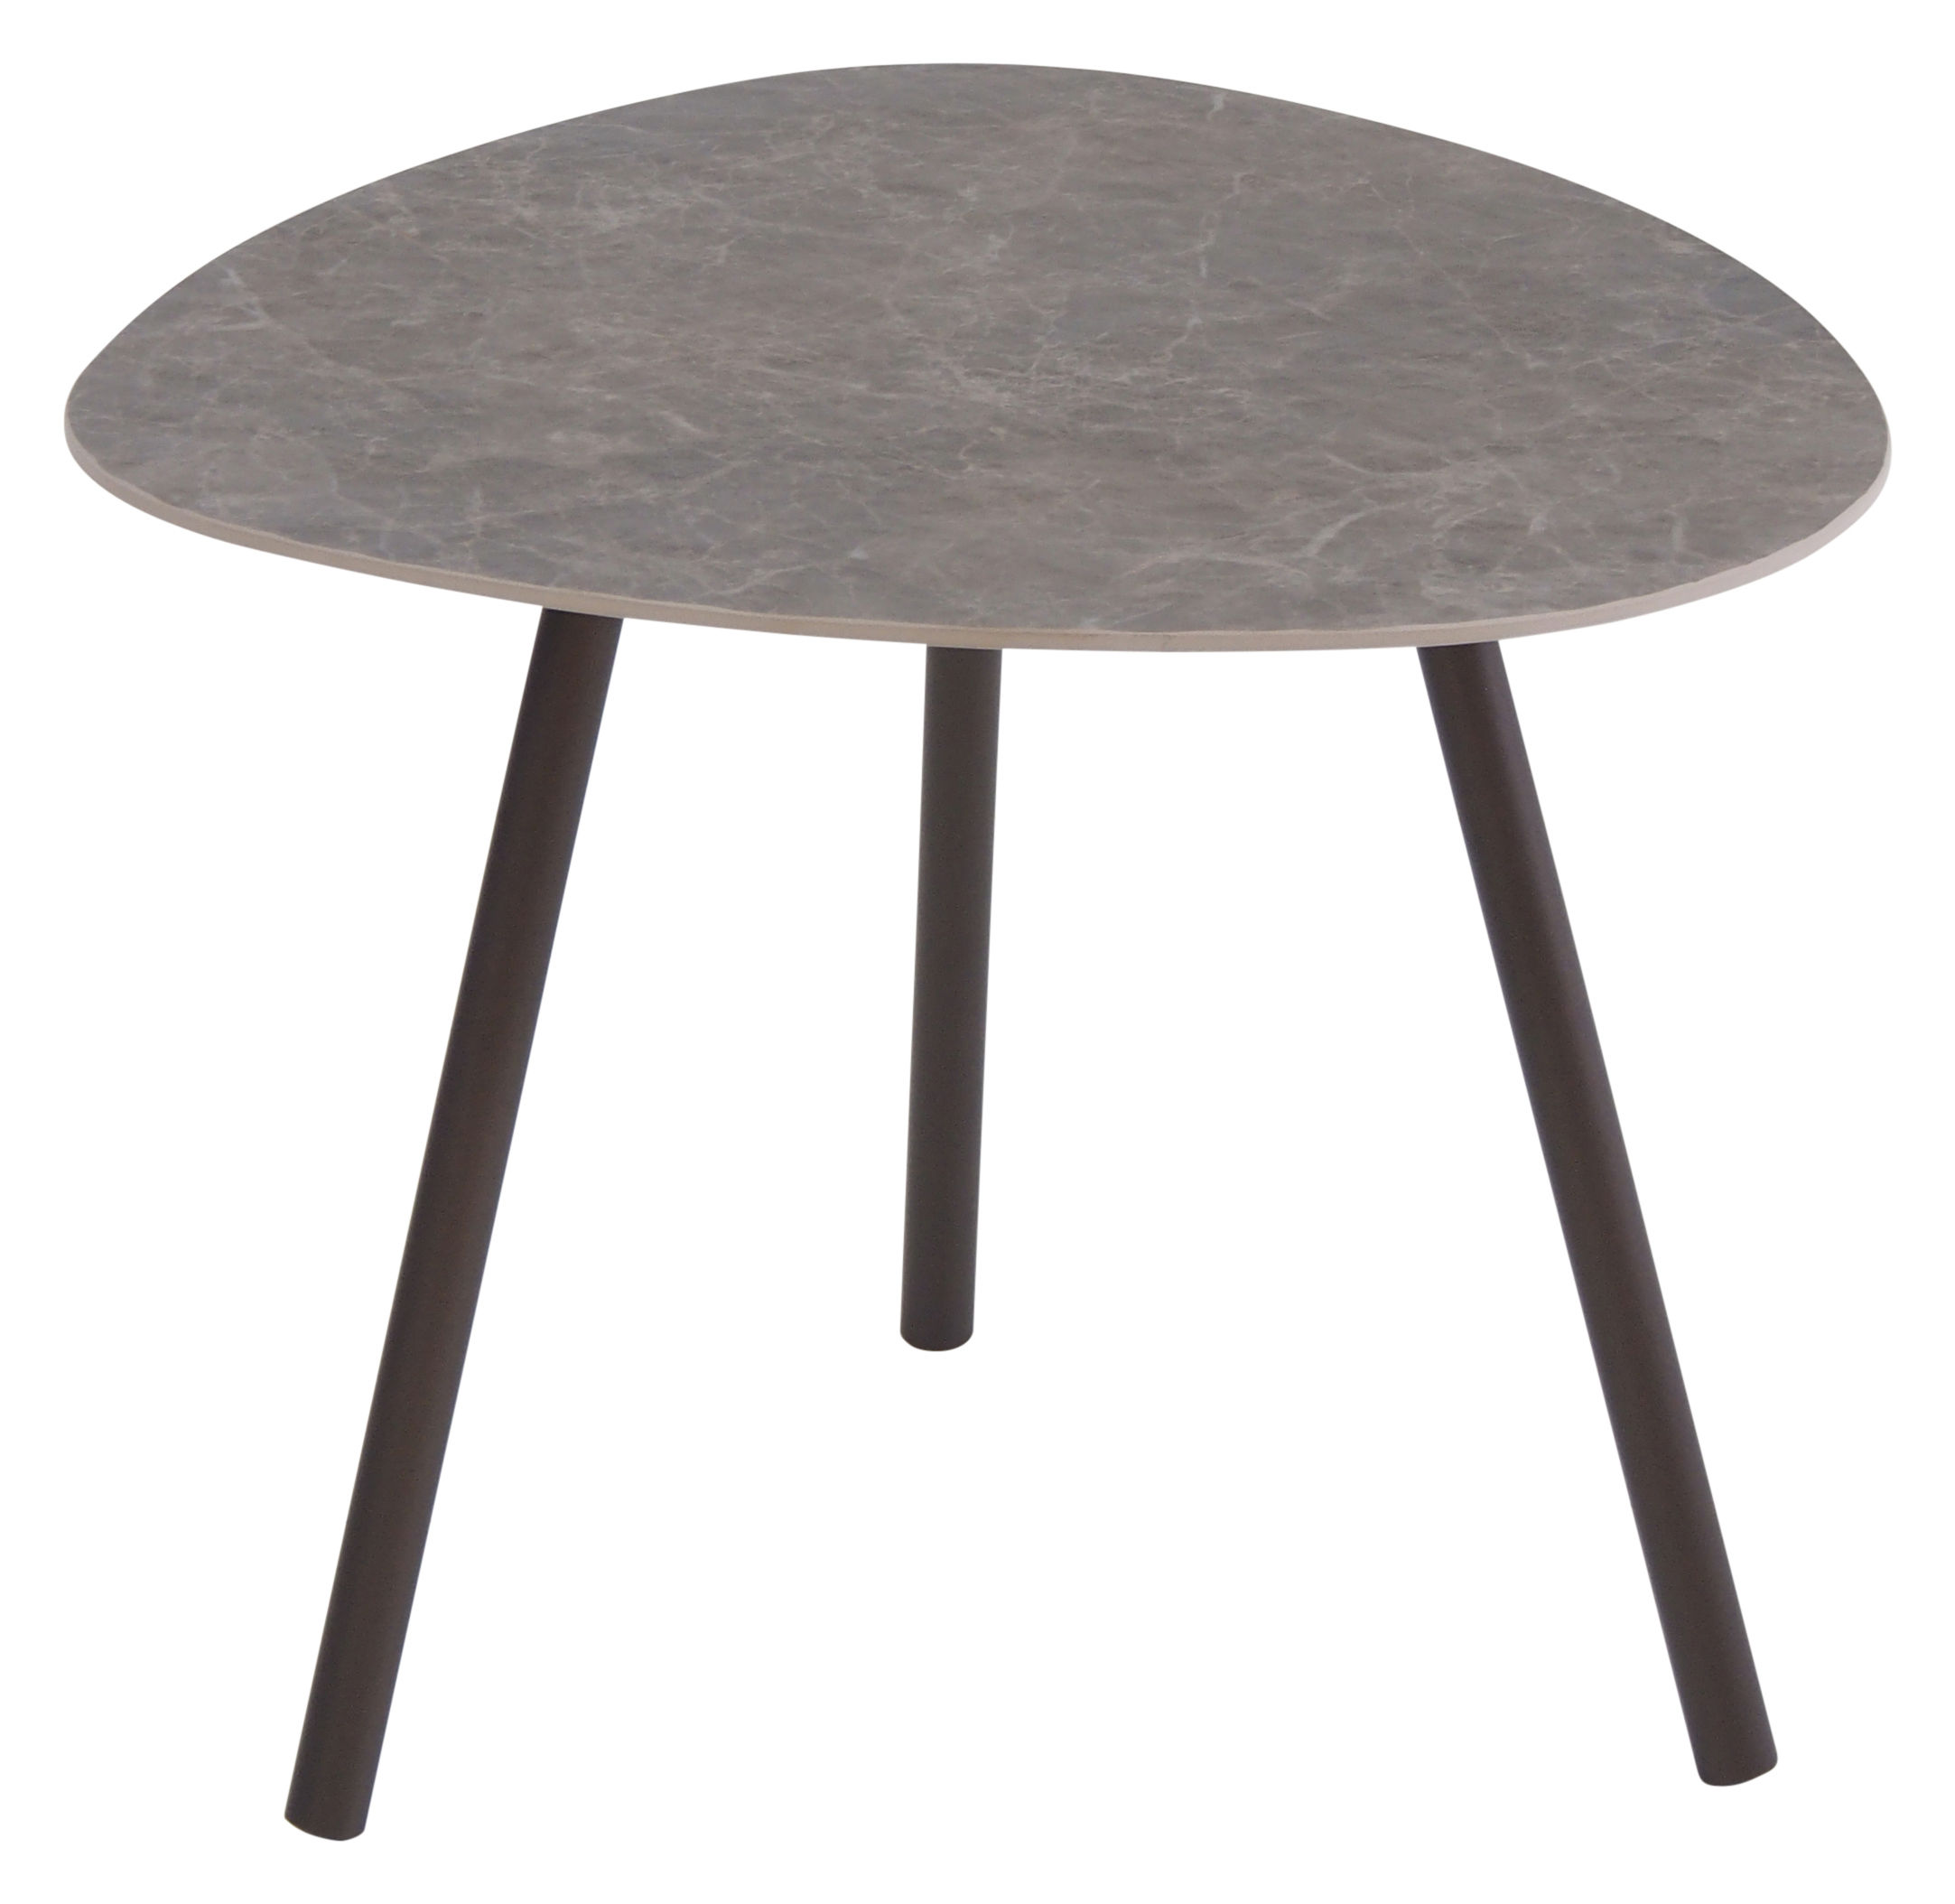 table basse terramare emu effet b ton anthracite pieds marron d 39 inde h 40 made in design. Black Bedroom Furniture Sets. Home Design Ideas